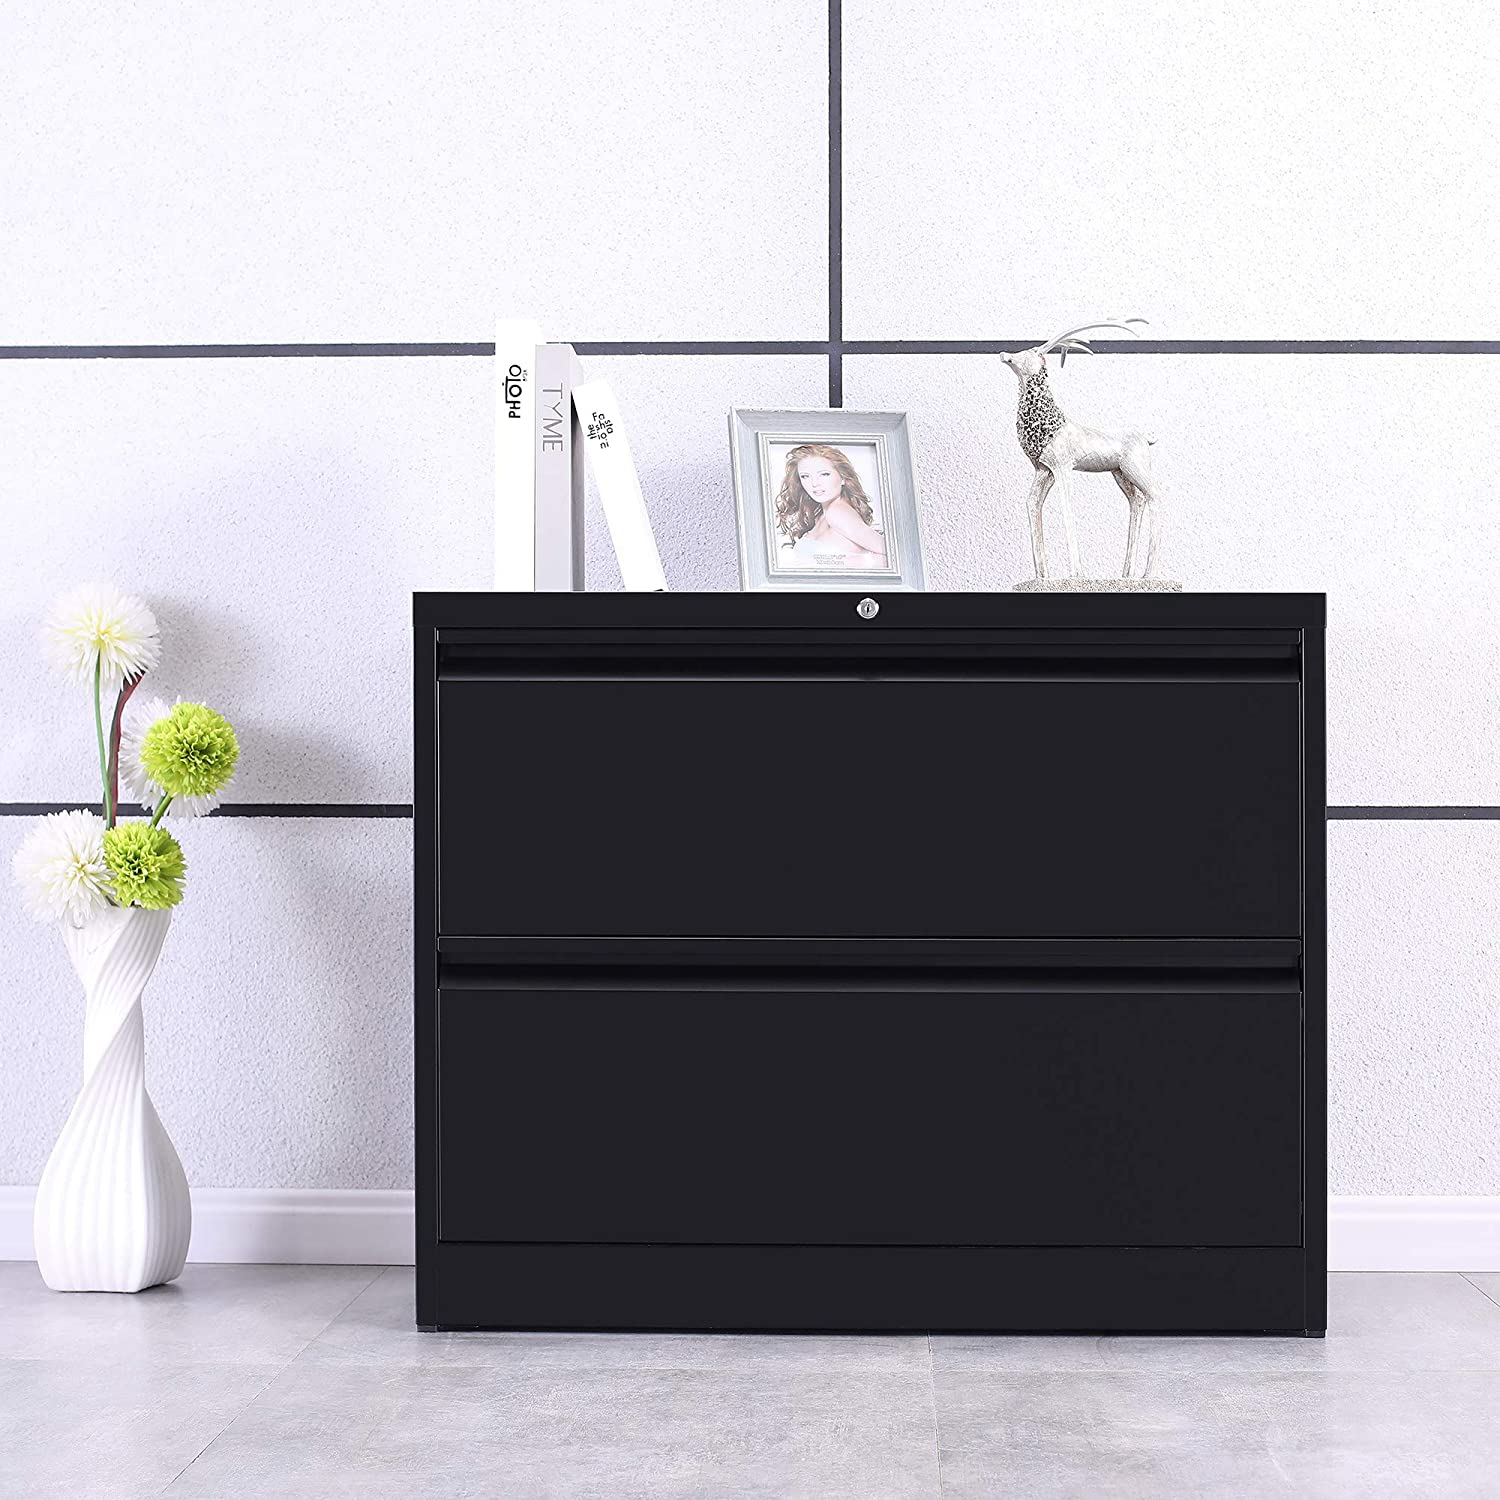 ModernLuxe Heavy-Duty Lateral File Cabinet Black, 3-Drawers:35.4W17.7D40.3H